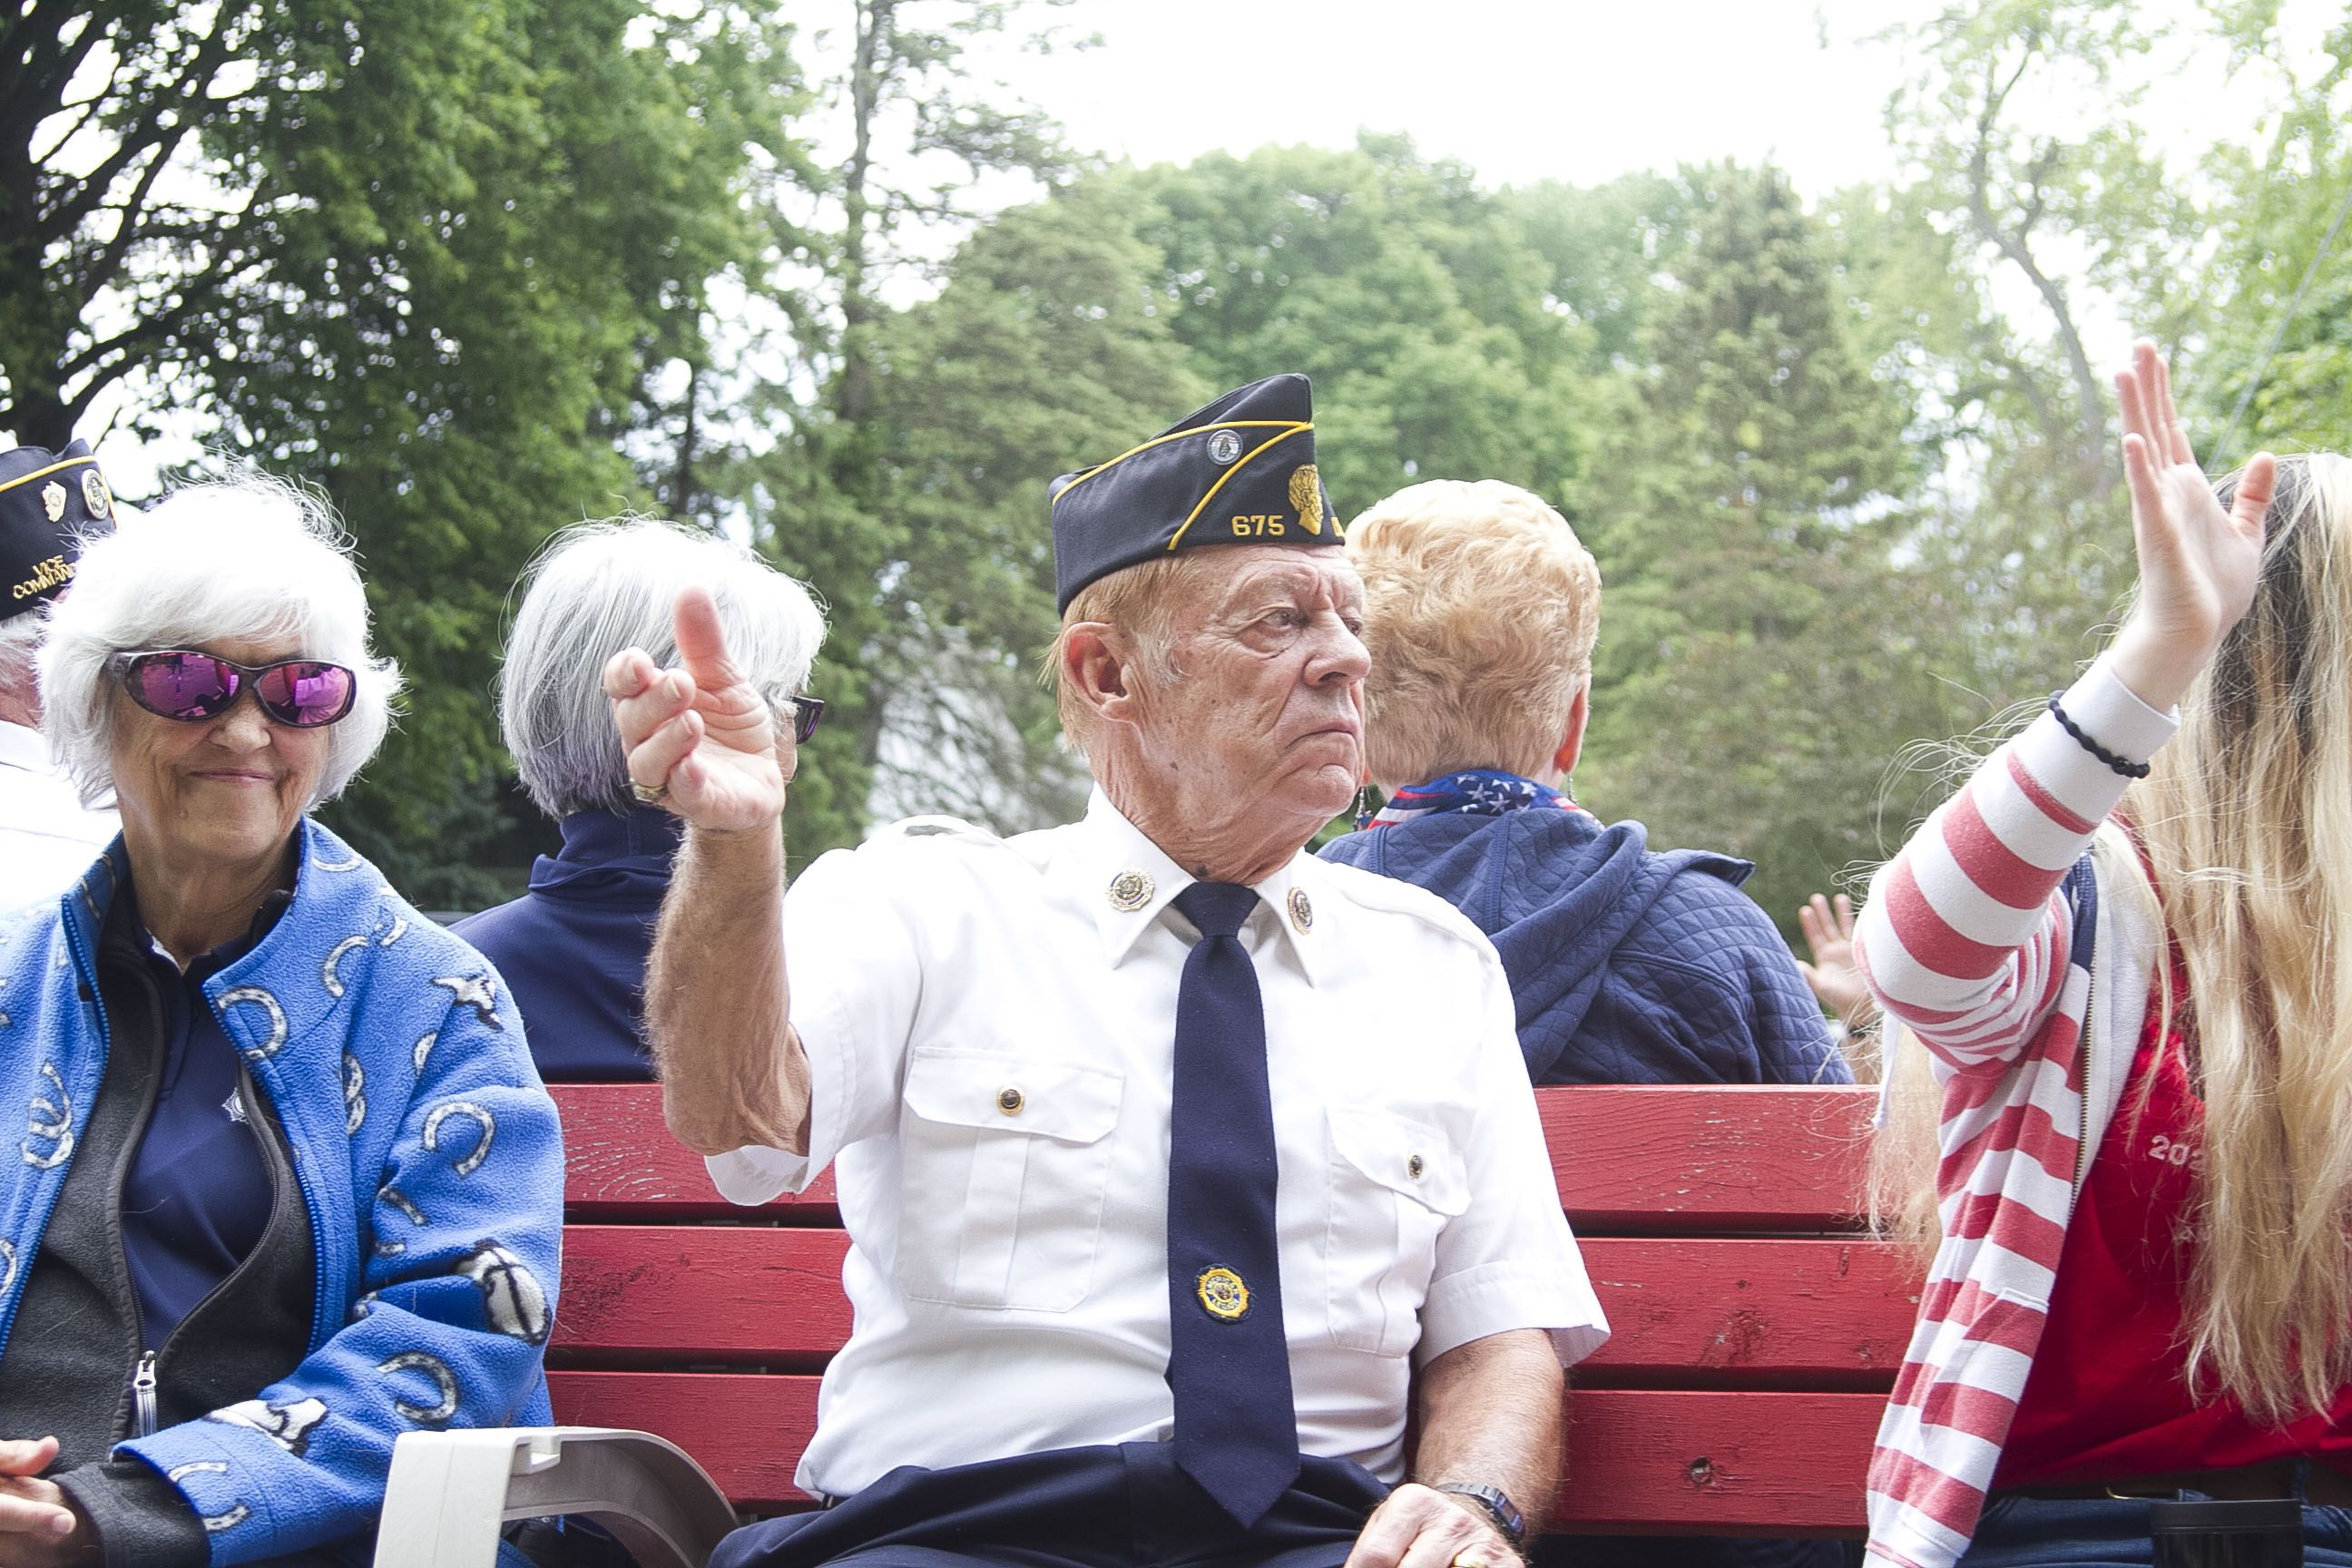 Veterans and their families rode to Oswego Township Cemetery for the annual Memorial Day ceremony led by the American Legion Post 675.